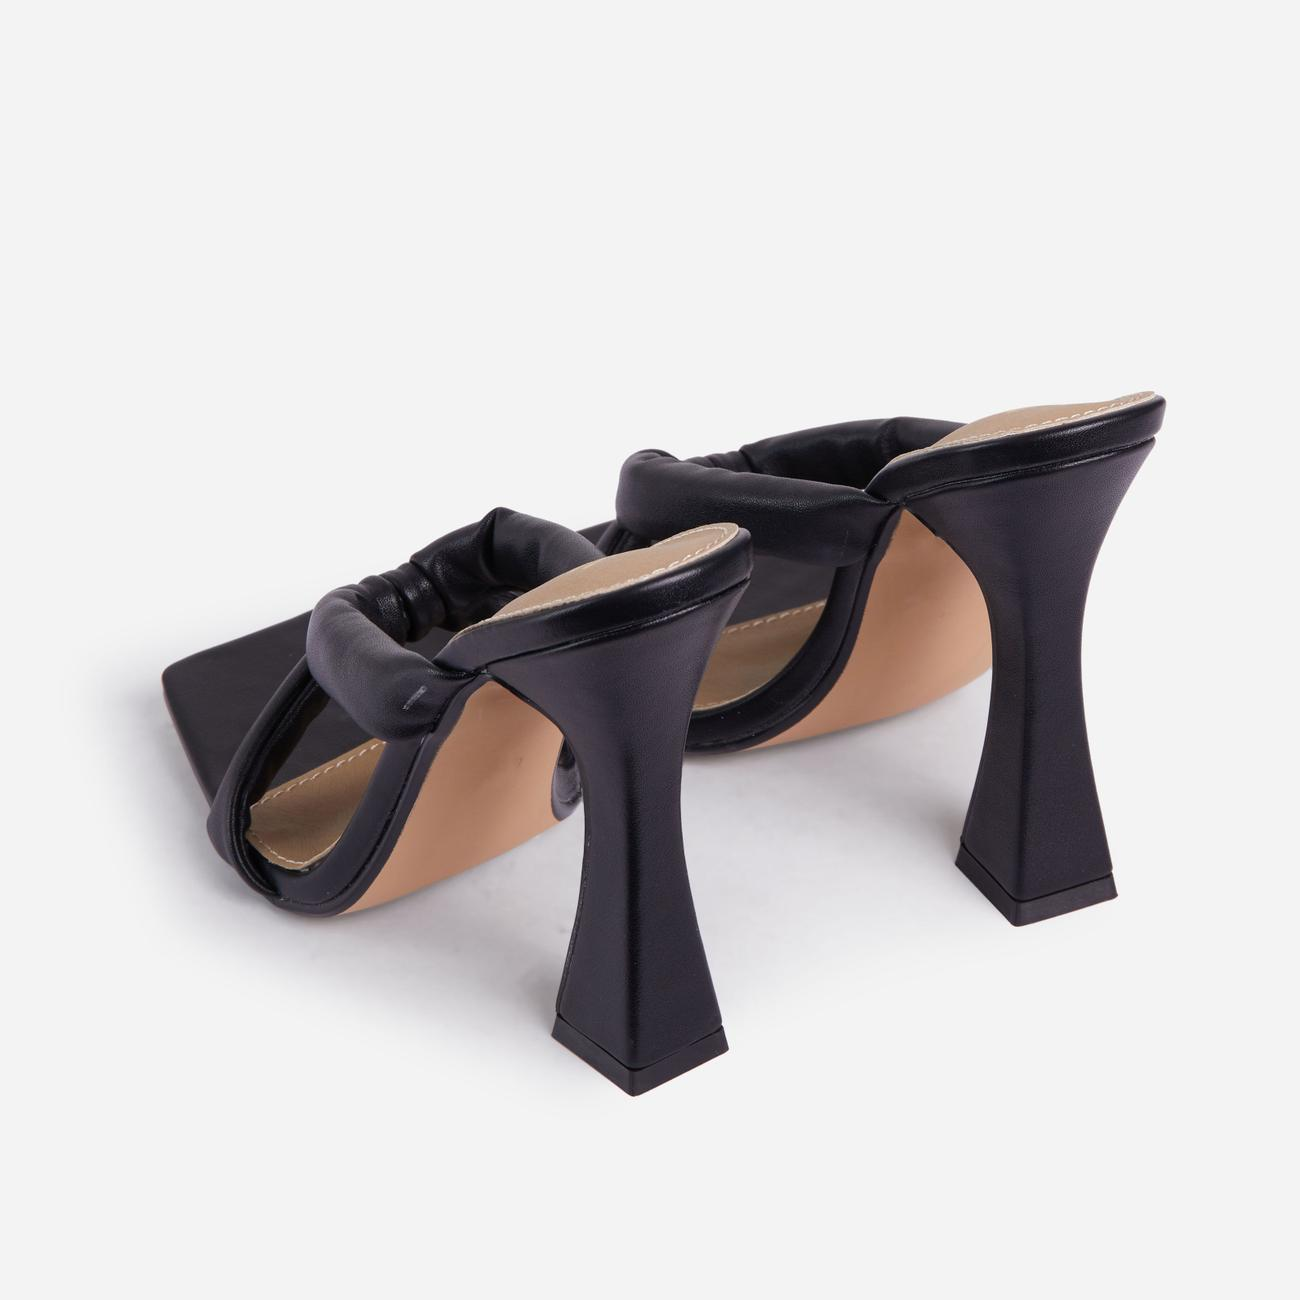 Loyal Padded Cross Strap Square Toe Heel Mule In Black Faux Leather Image 3